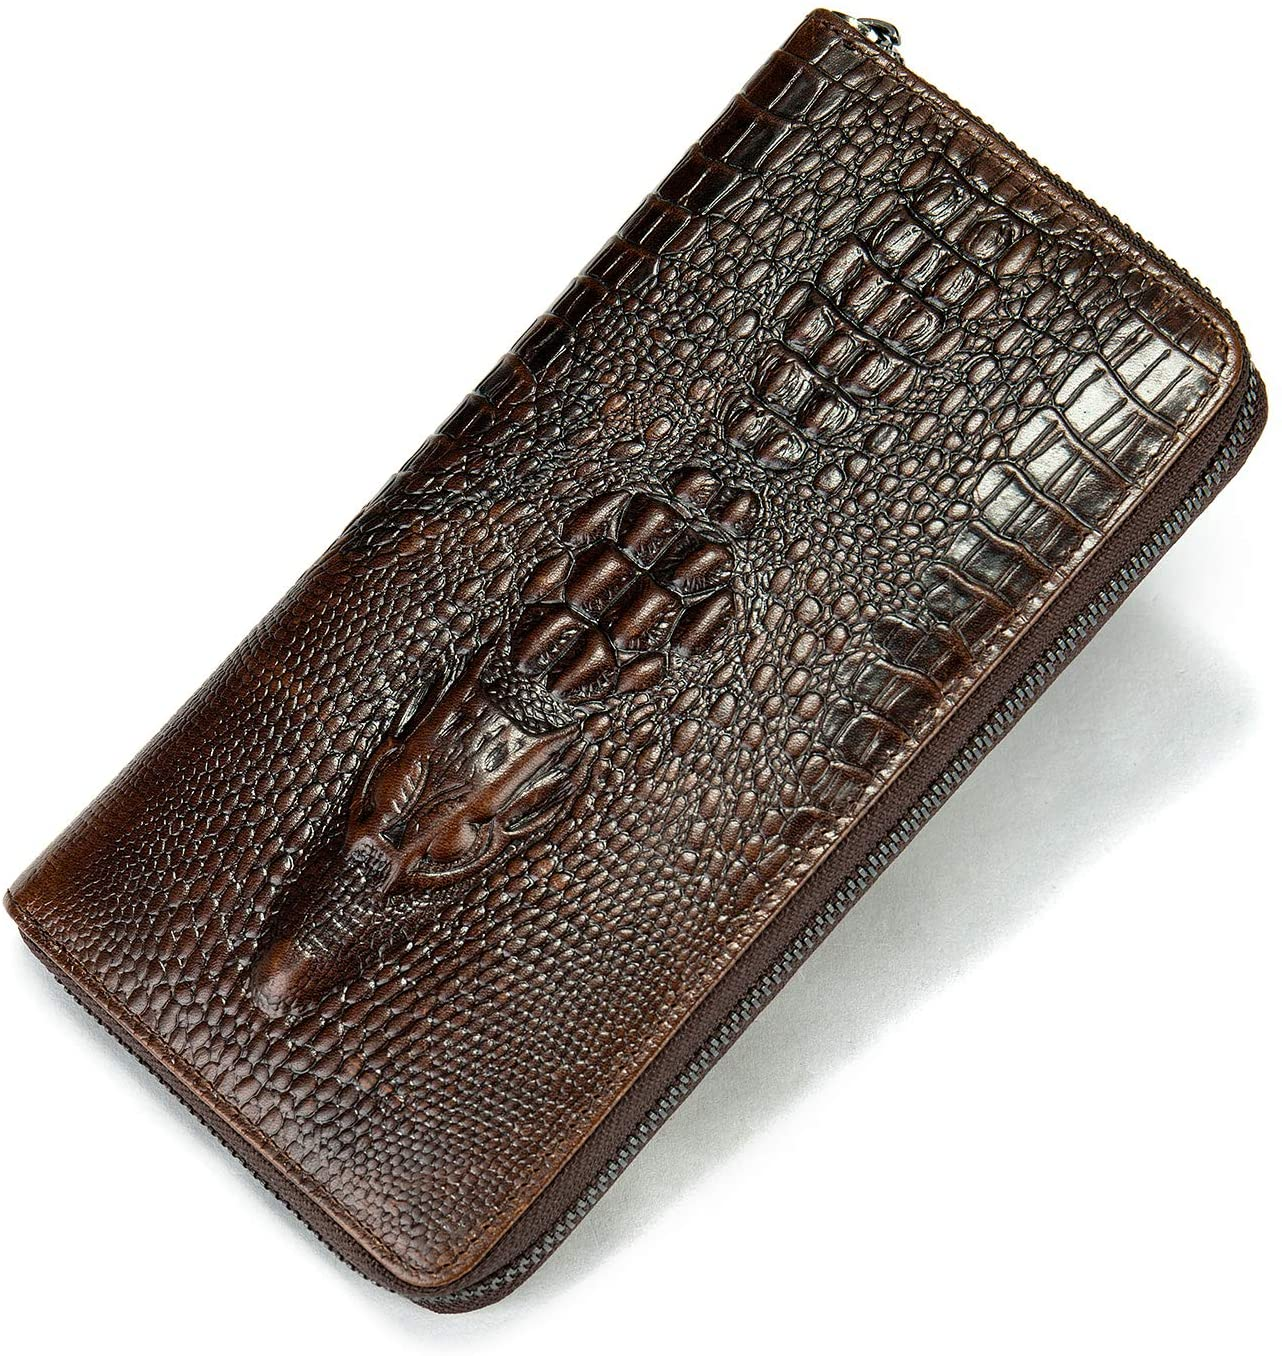 NIUCUNZH Genuine Leather Cool Long Wallets for Men Personalized Zip Around Wallet Checkbook Cash Credit Card Holder Wallet Coffee